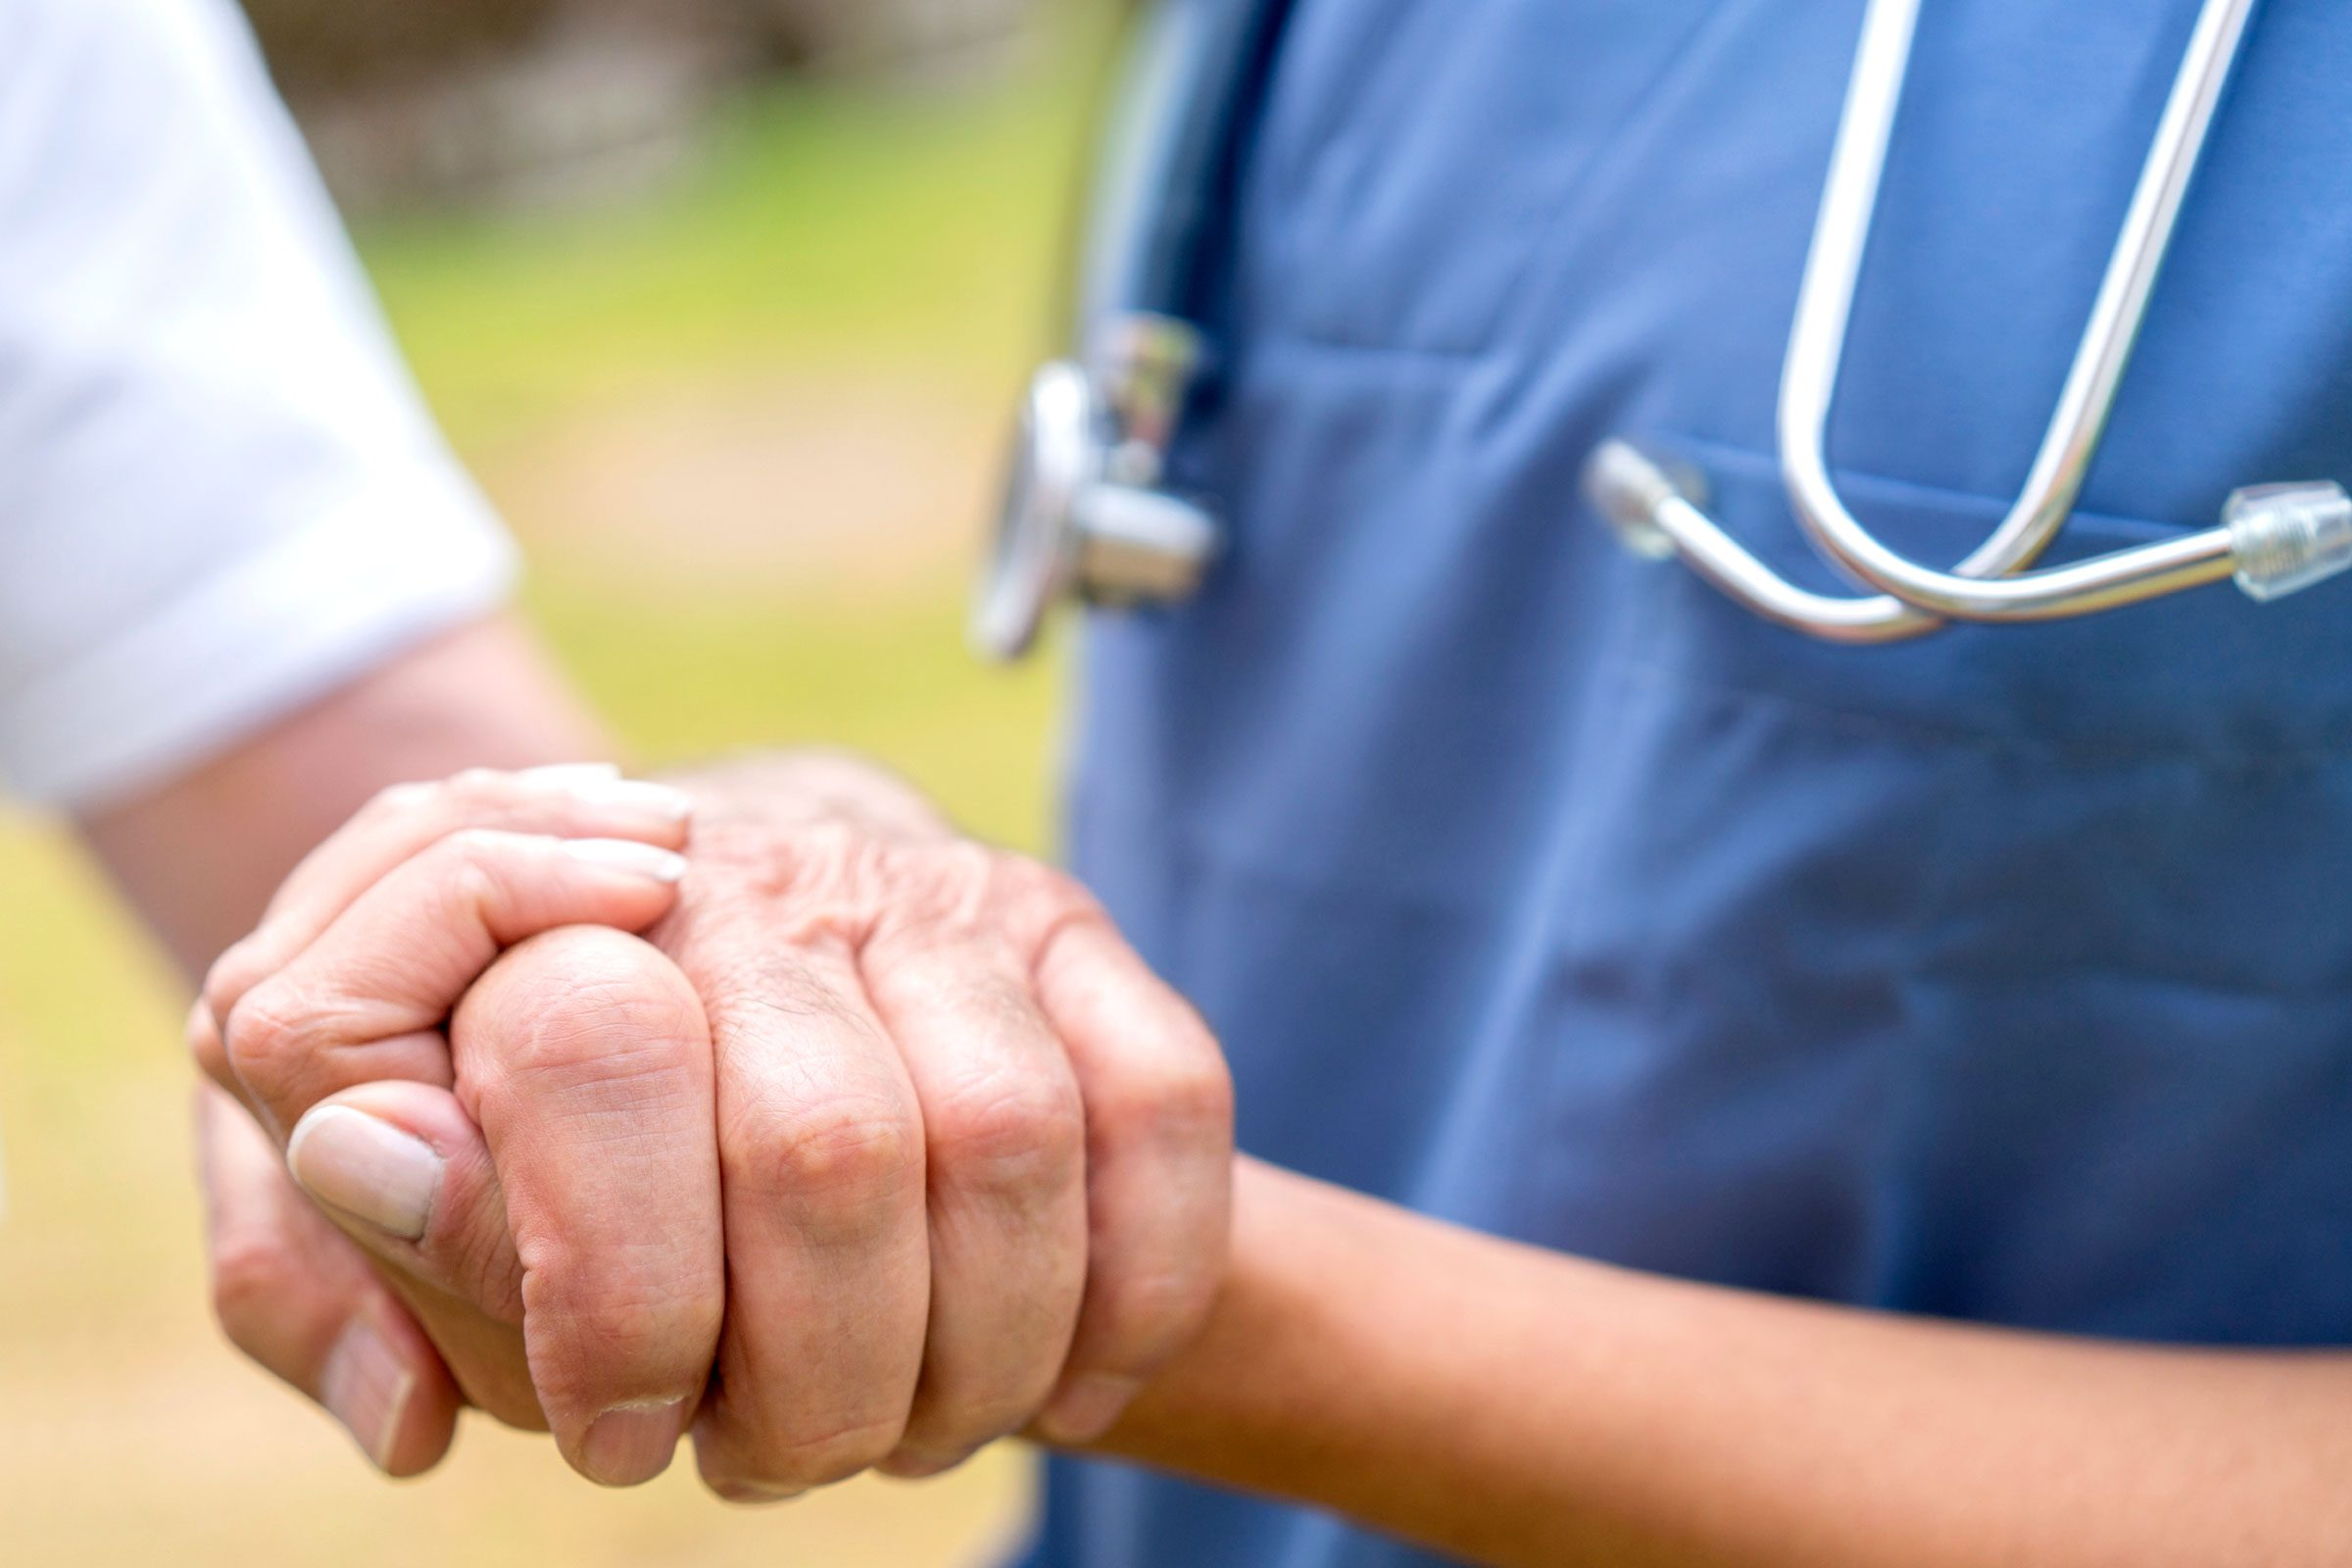 worker with stethoscope holding patient's hand